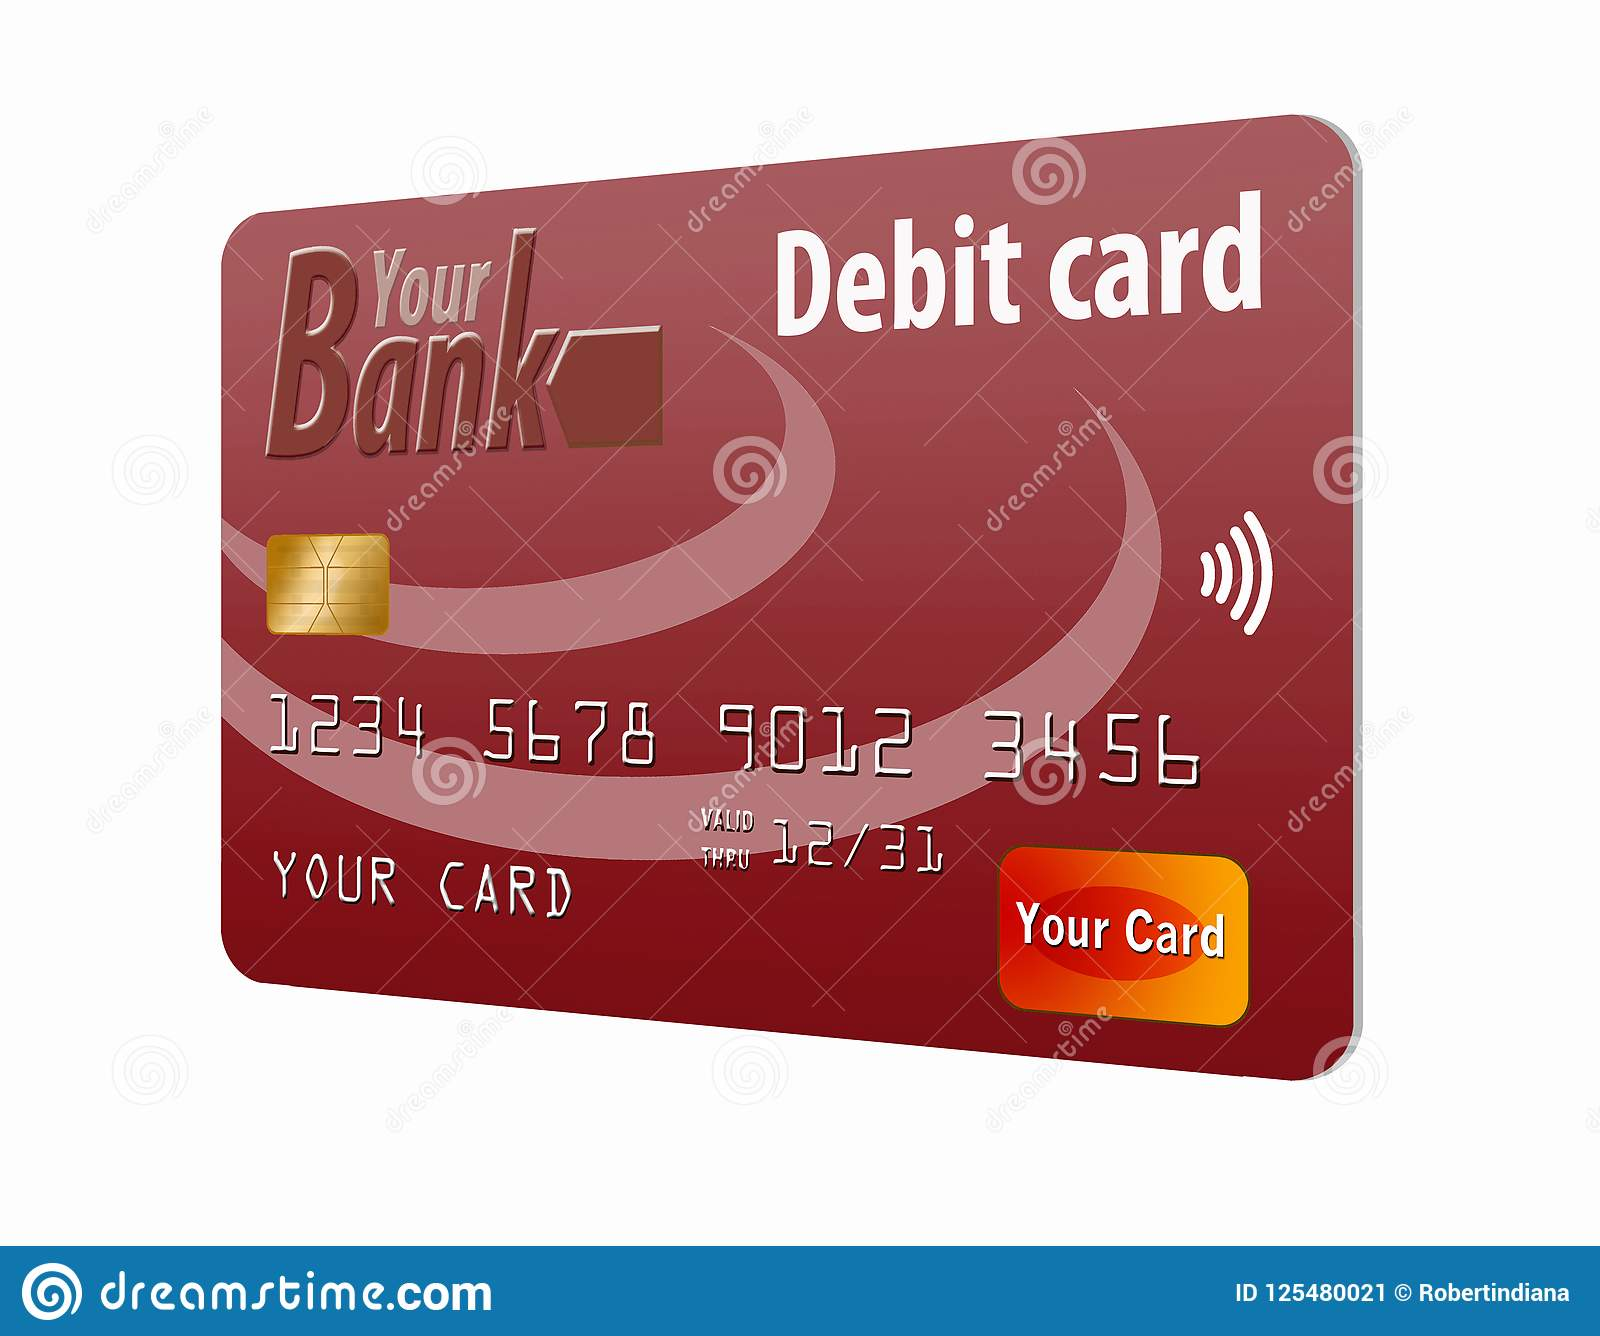 This is a generic debit card.